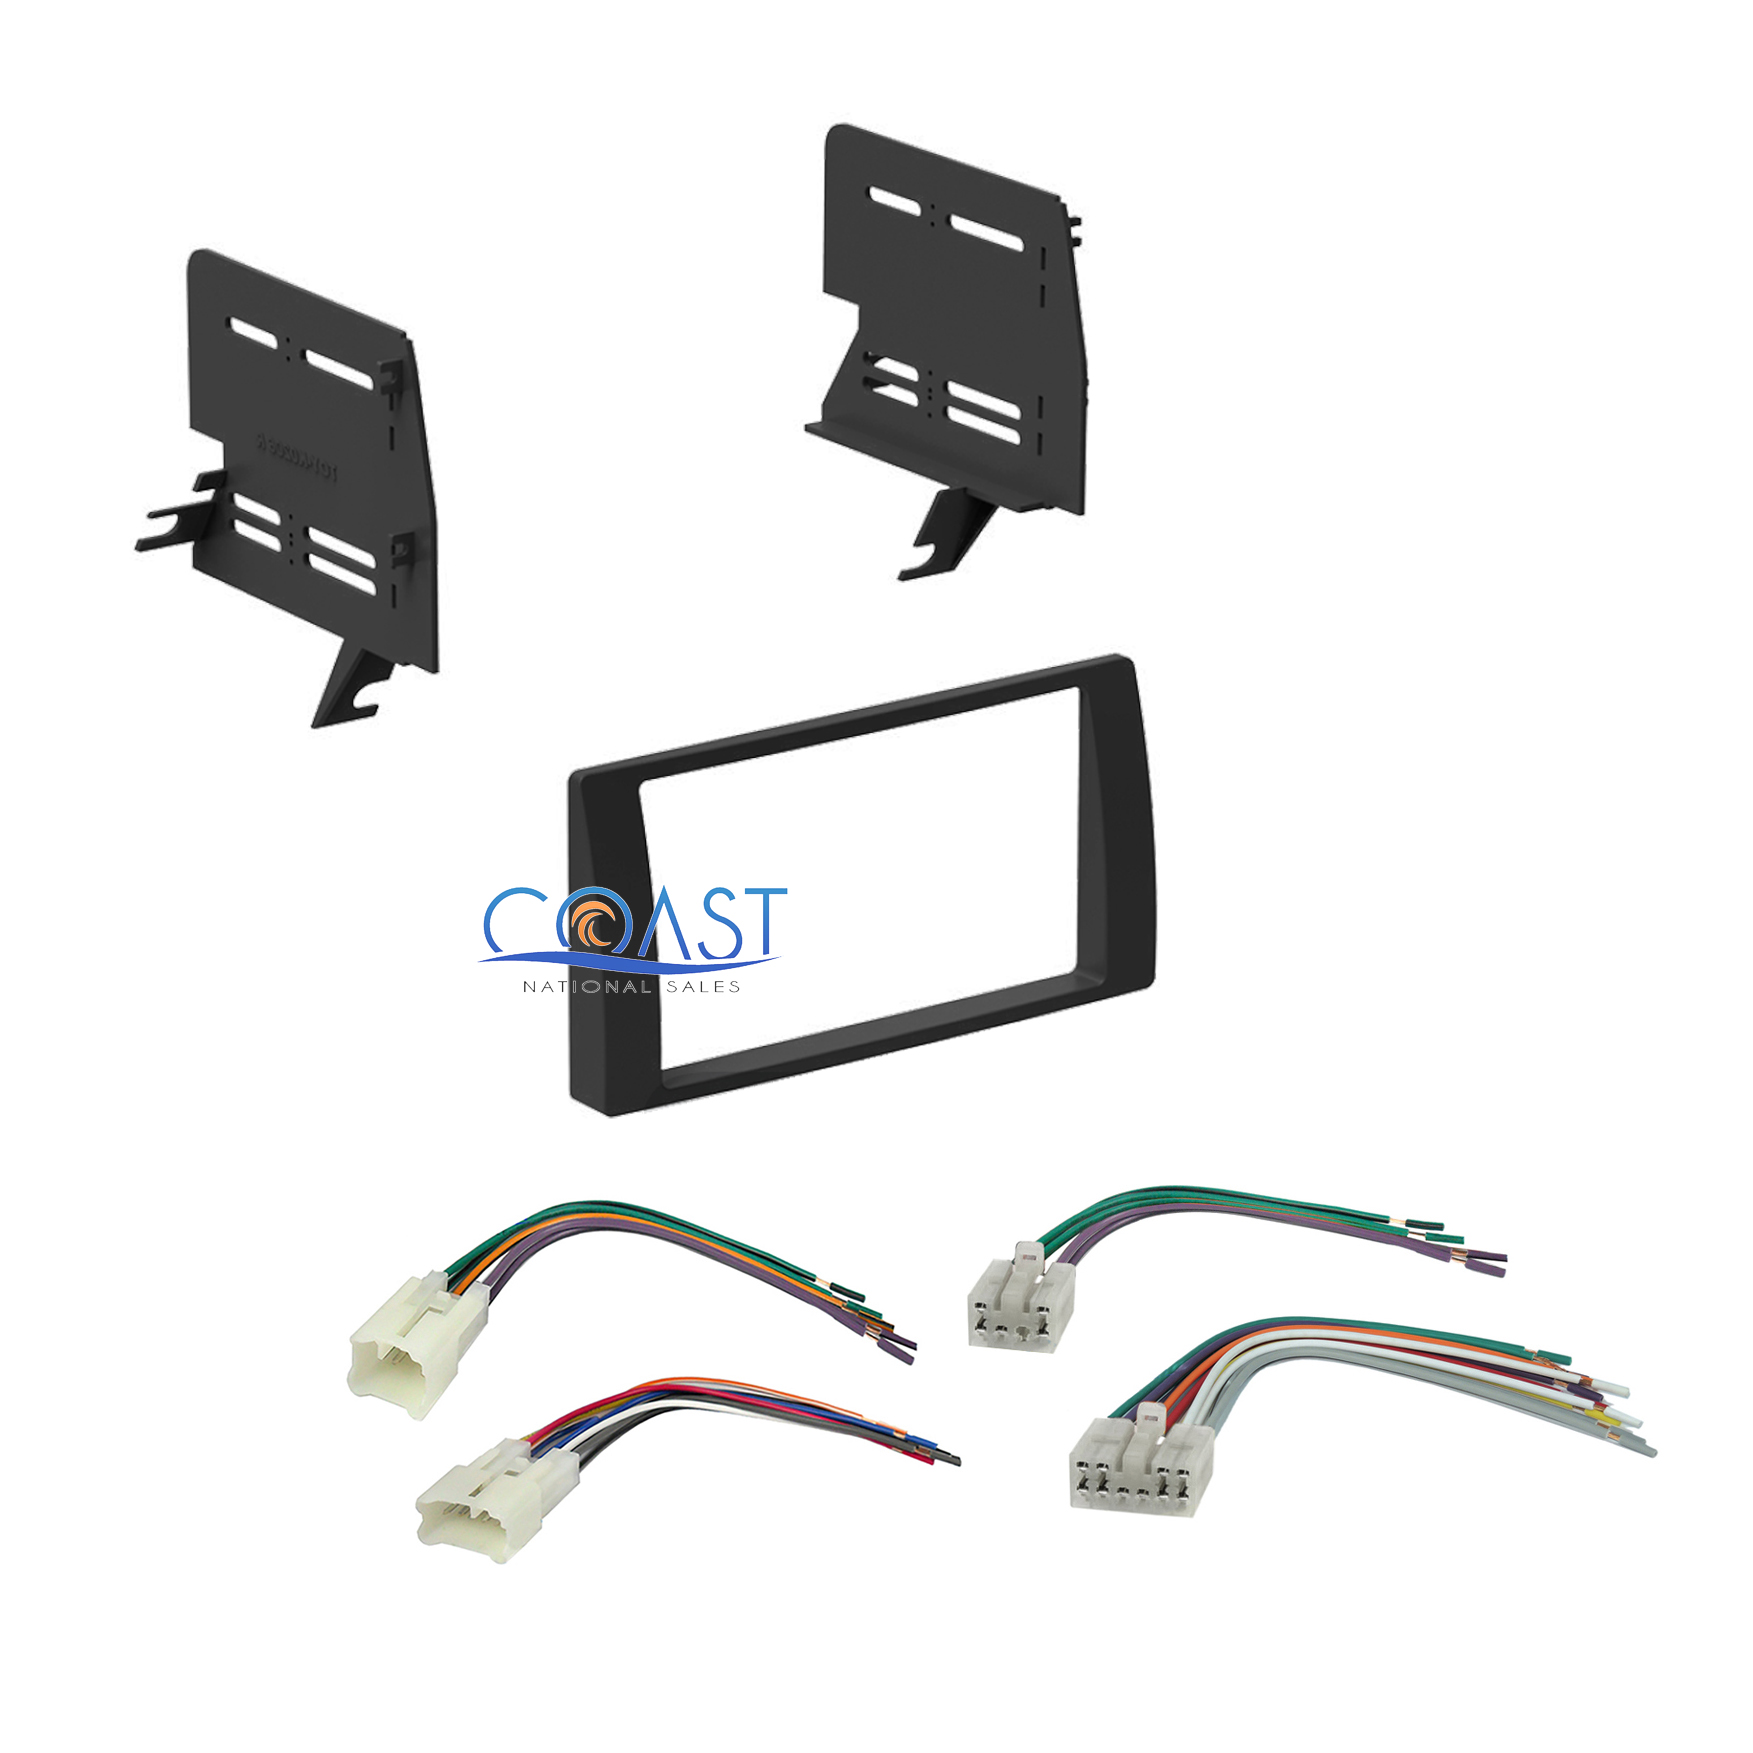 Xscorpion car stereo mounting dash kit 14